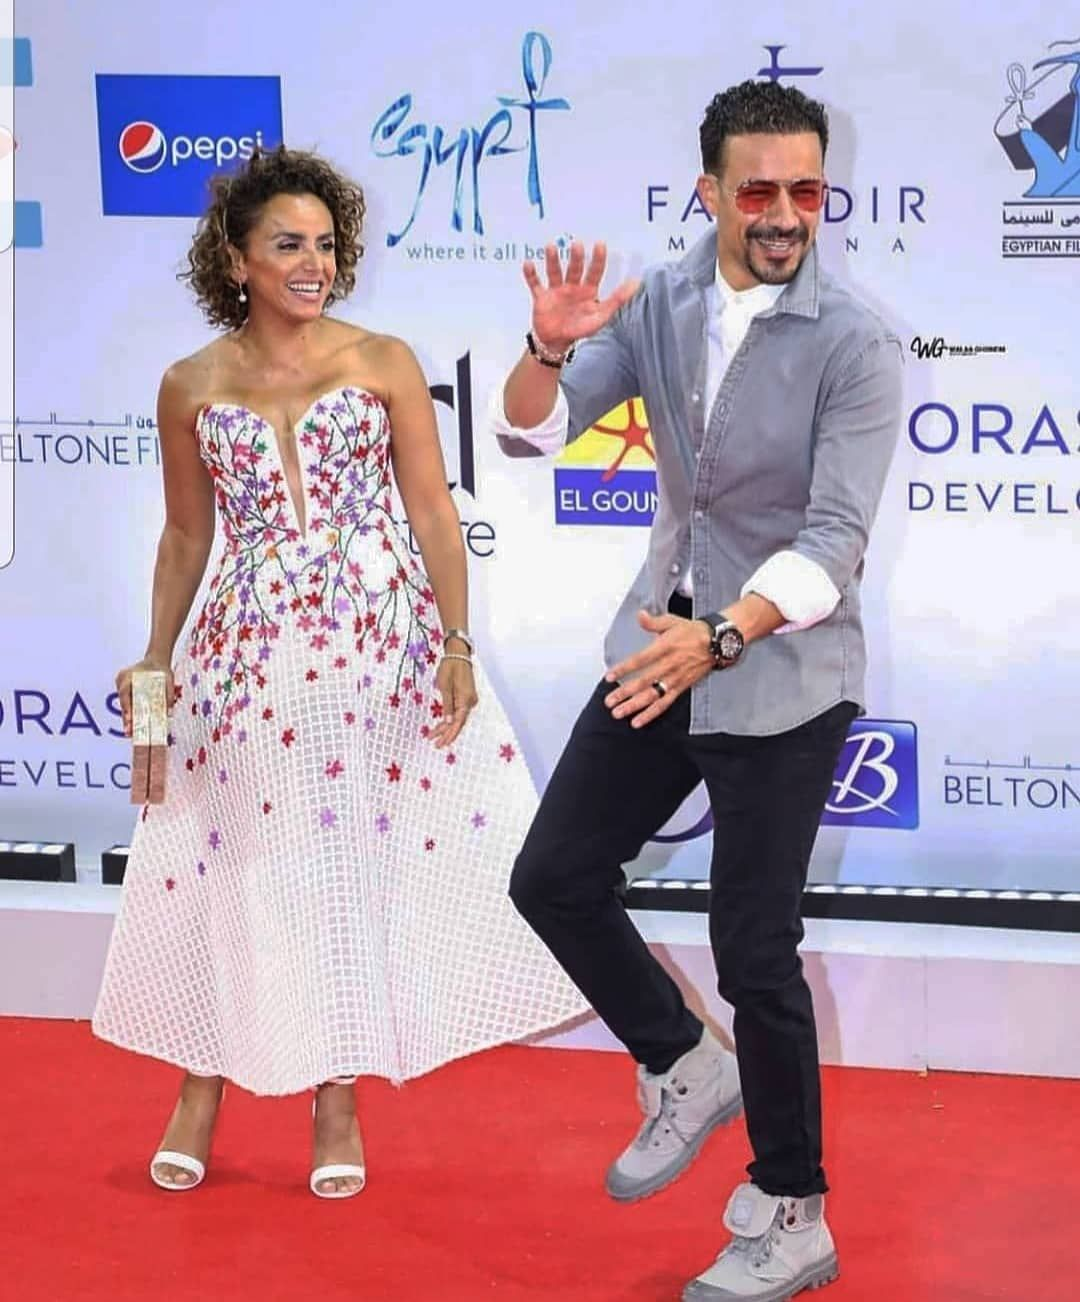 Soha Murad On Instagram Gff S Fun Couple At The Screening Of When We Are Born At Elgounafilmfestivalofficial And O Fashion Gowns Celebrity Style Fun Couple